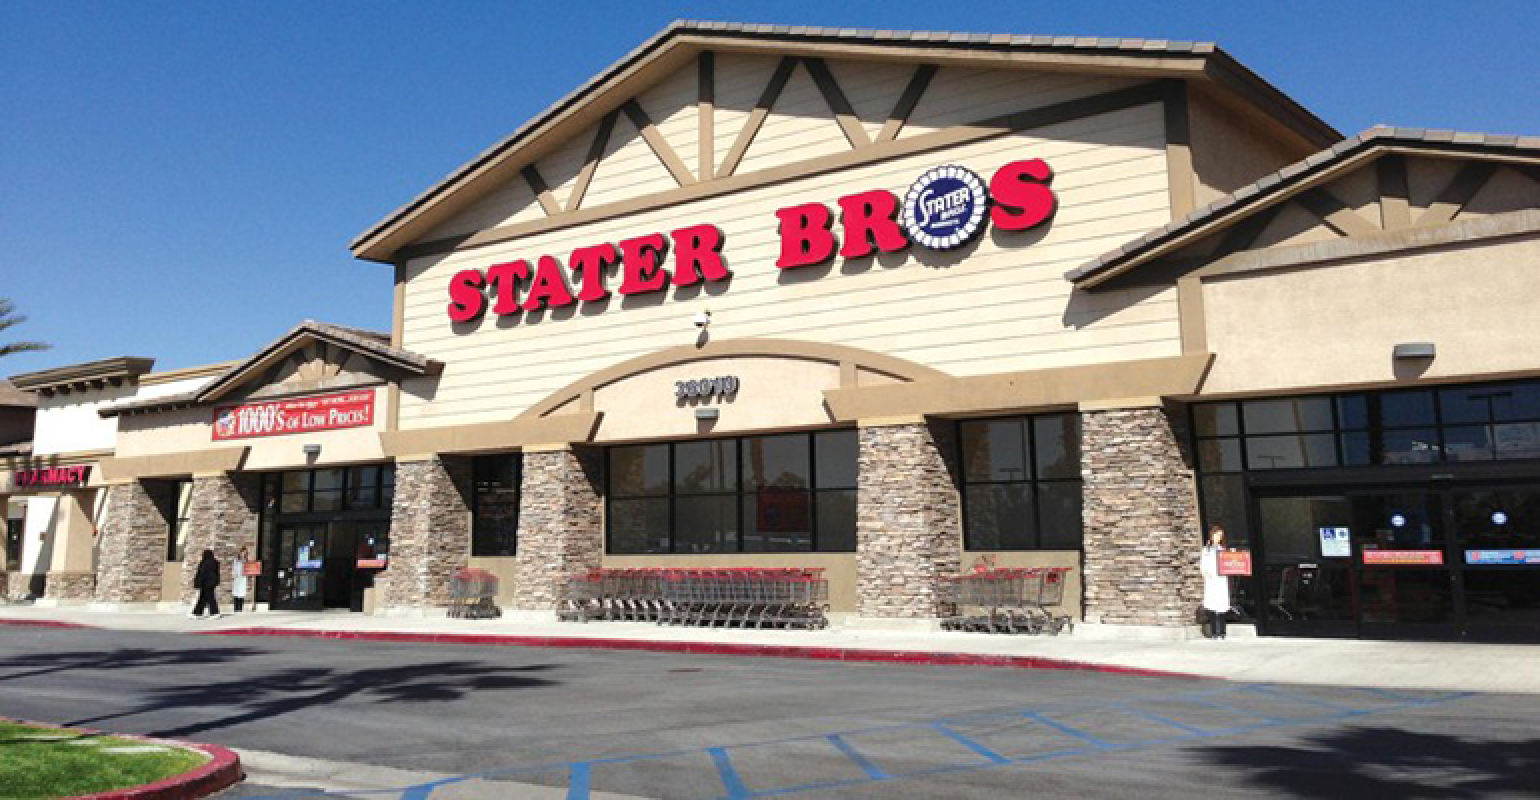 Stater Bros. store